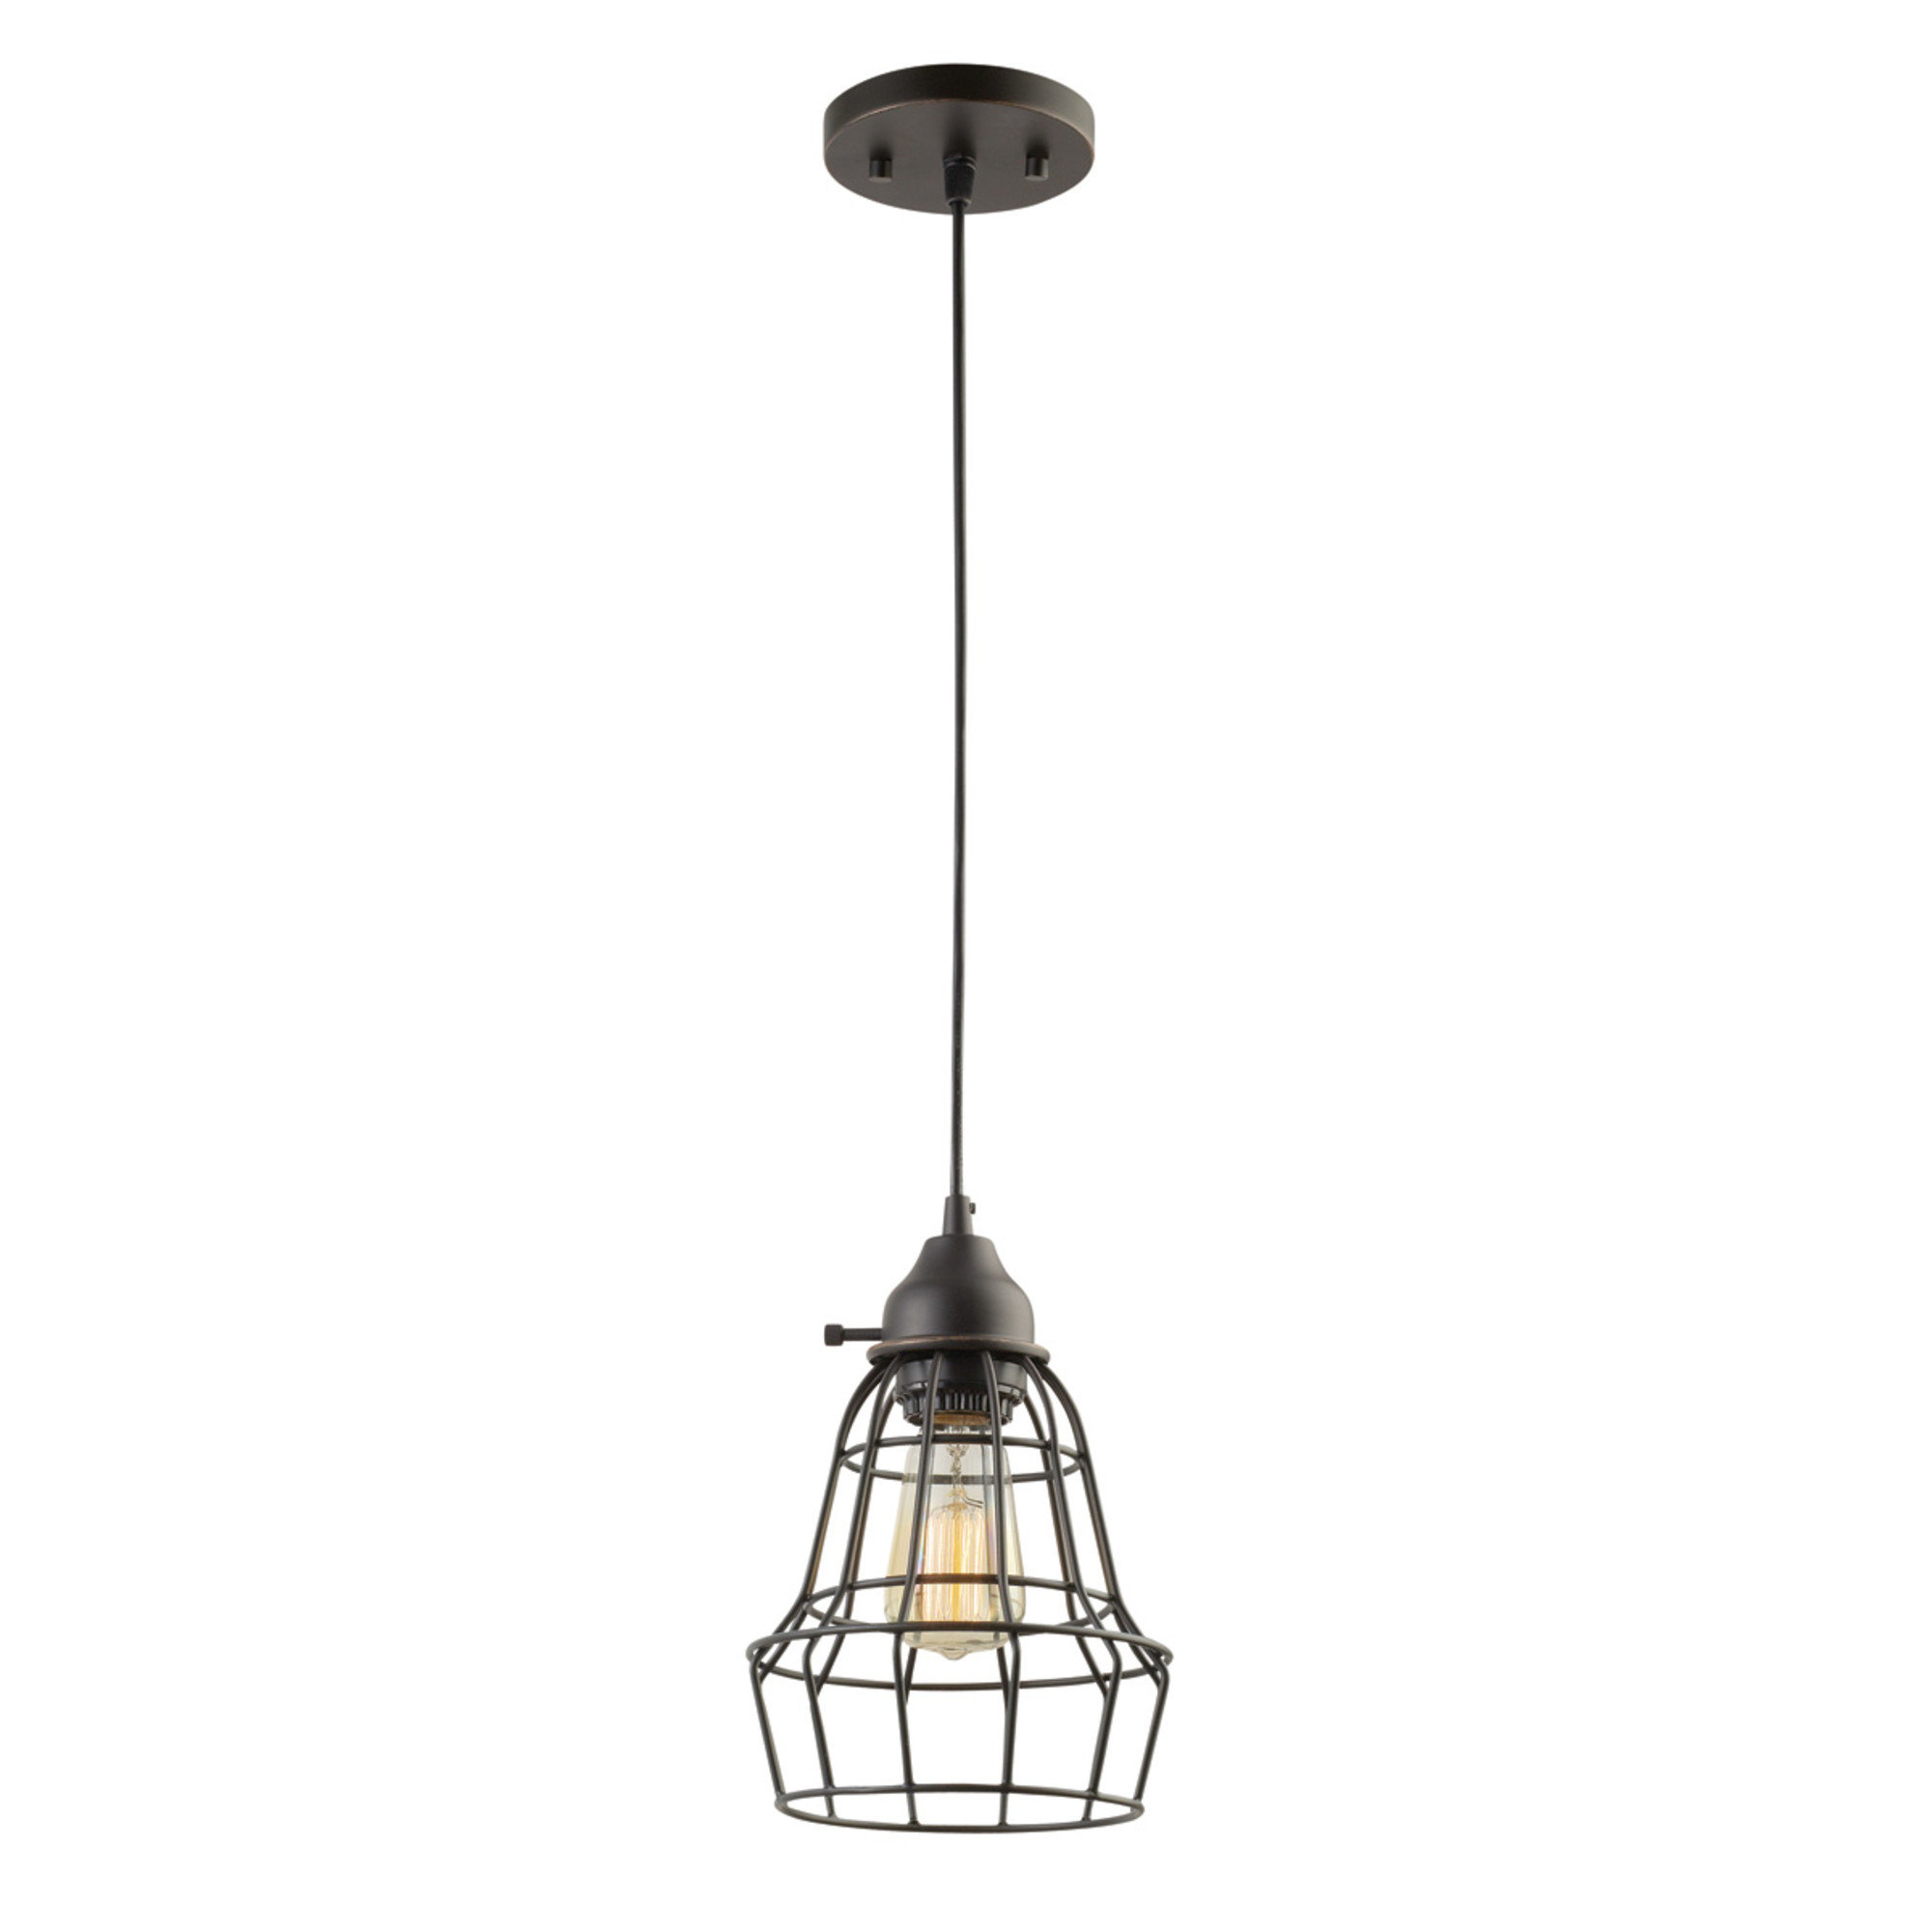 Kathi 1-Light Lantern Pendant with regard to Most Recently Released Stetson 1-Light Bowl Pendants